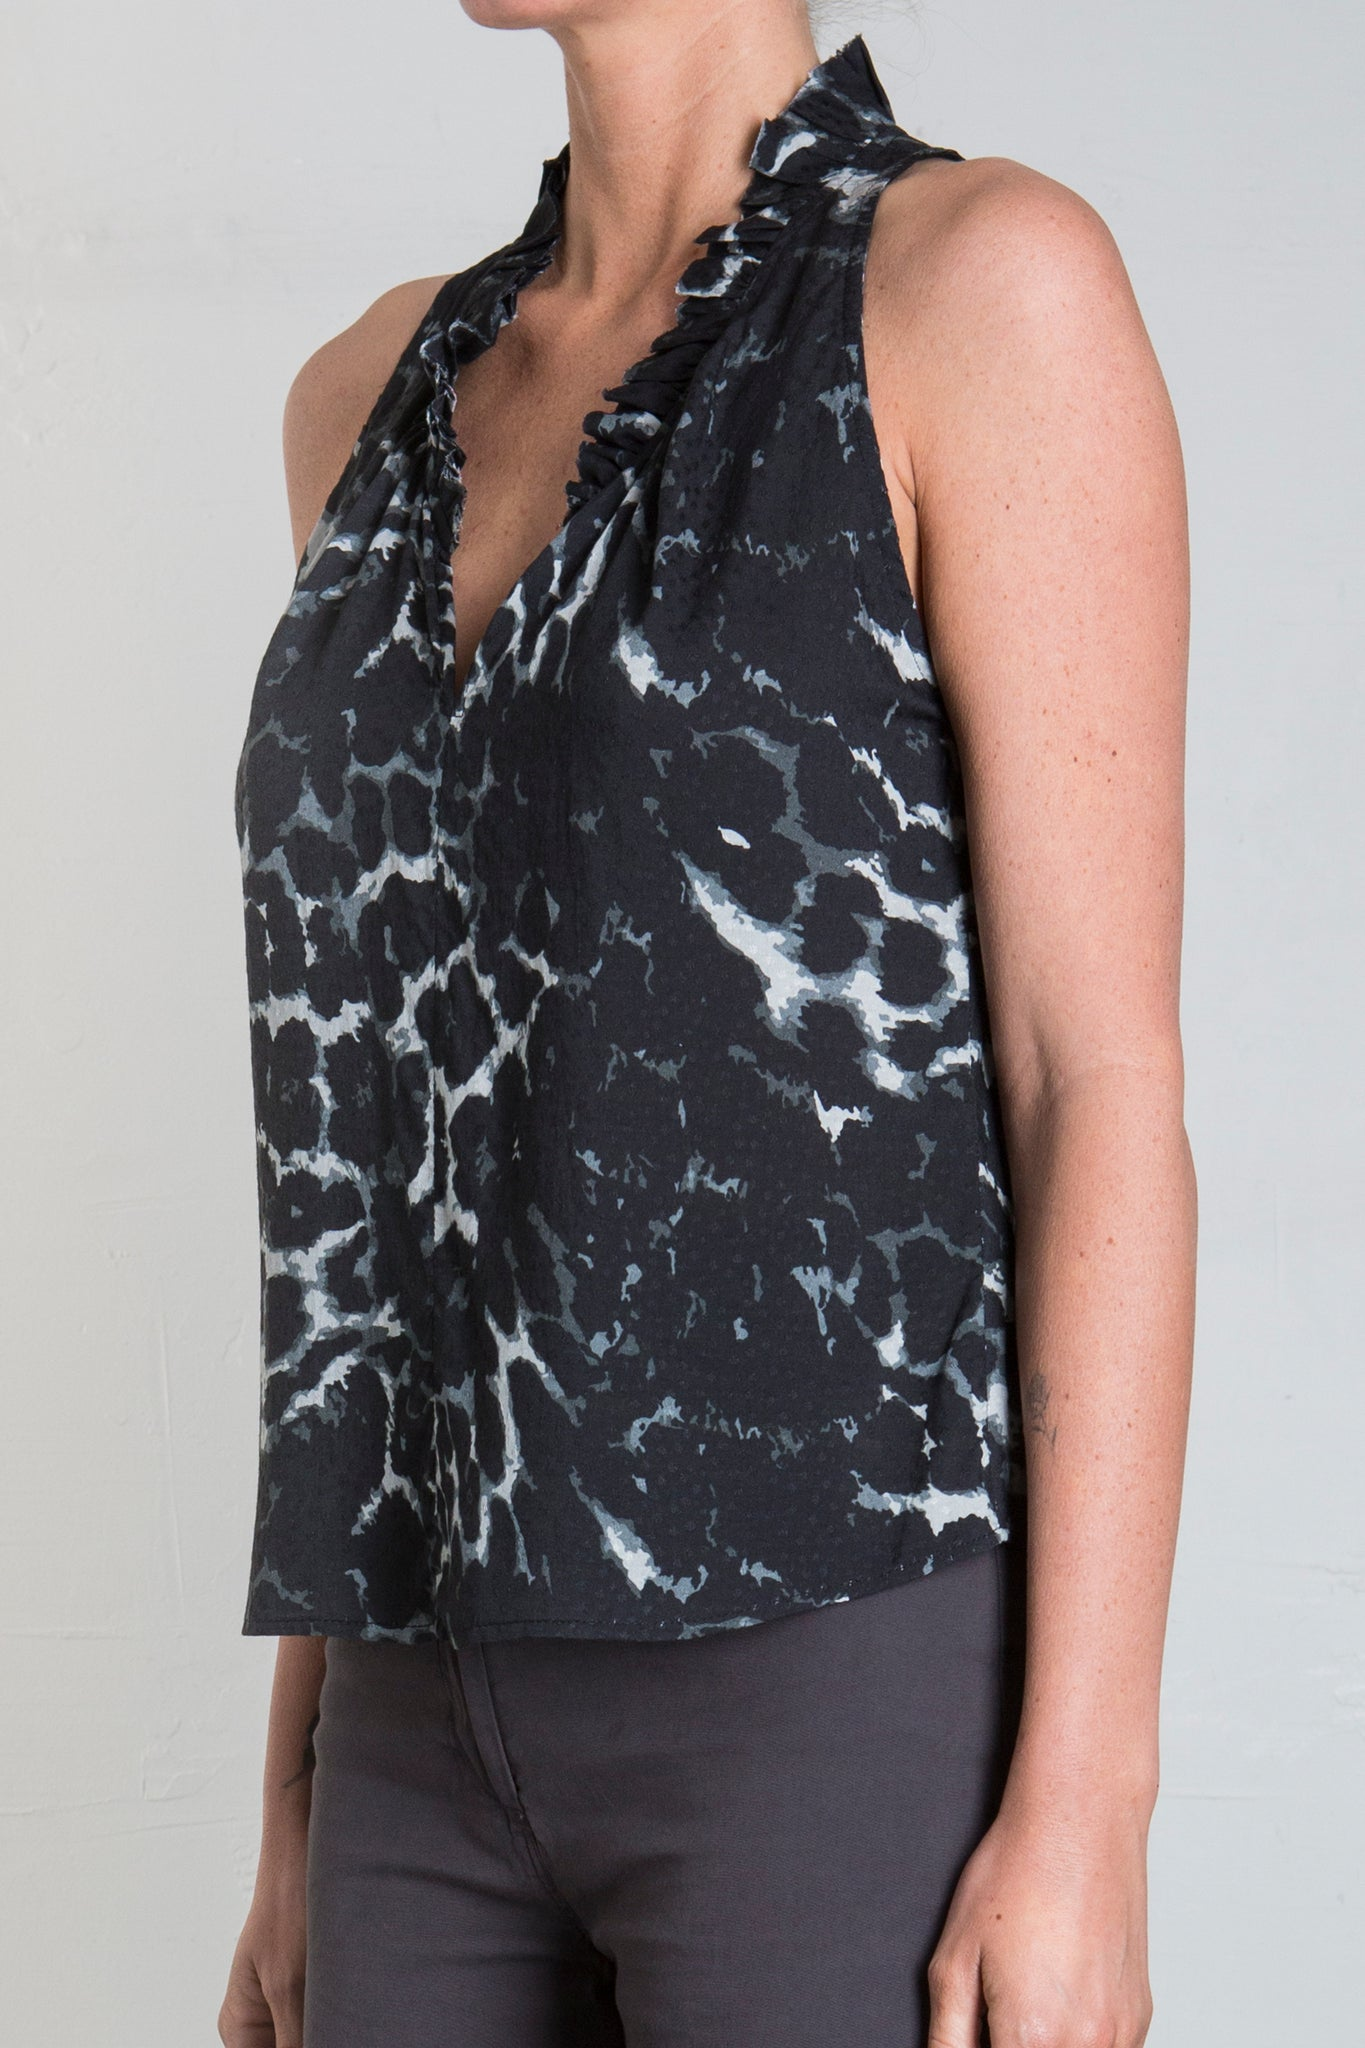 KNIGHTLY PRINTED TOP - DARK LEOPARD